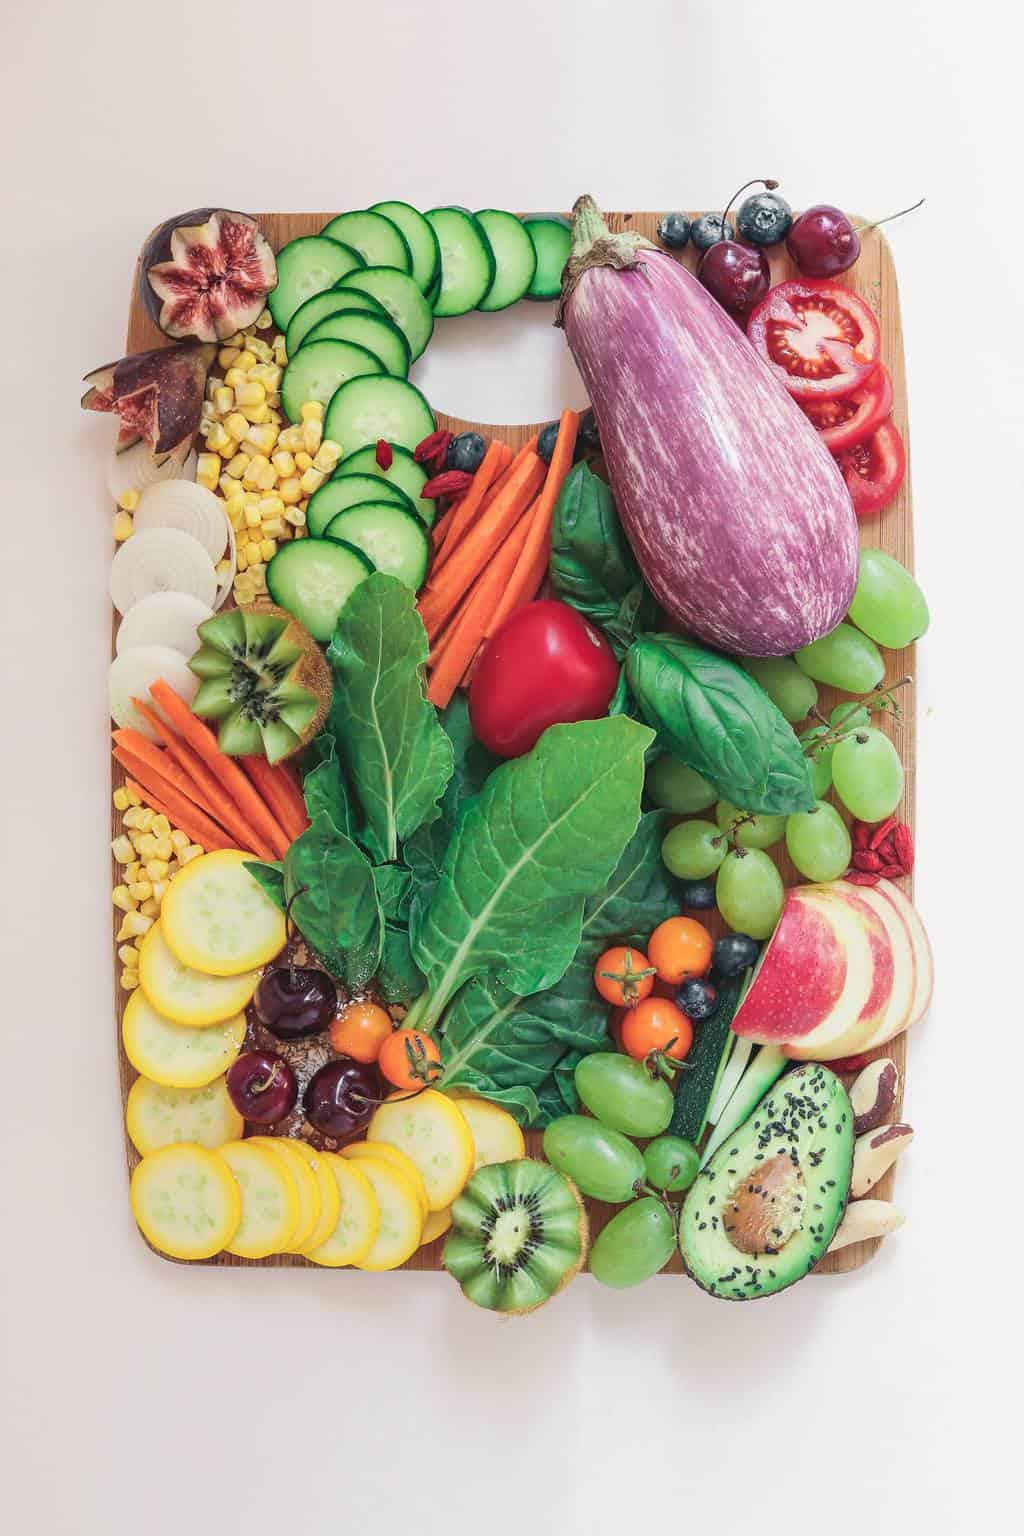 Big platter with fresh fruits and vegetables